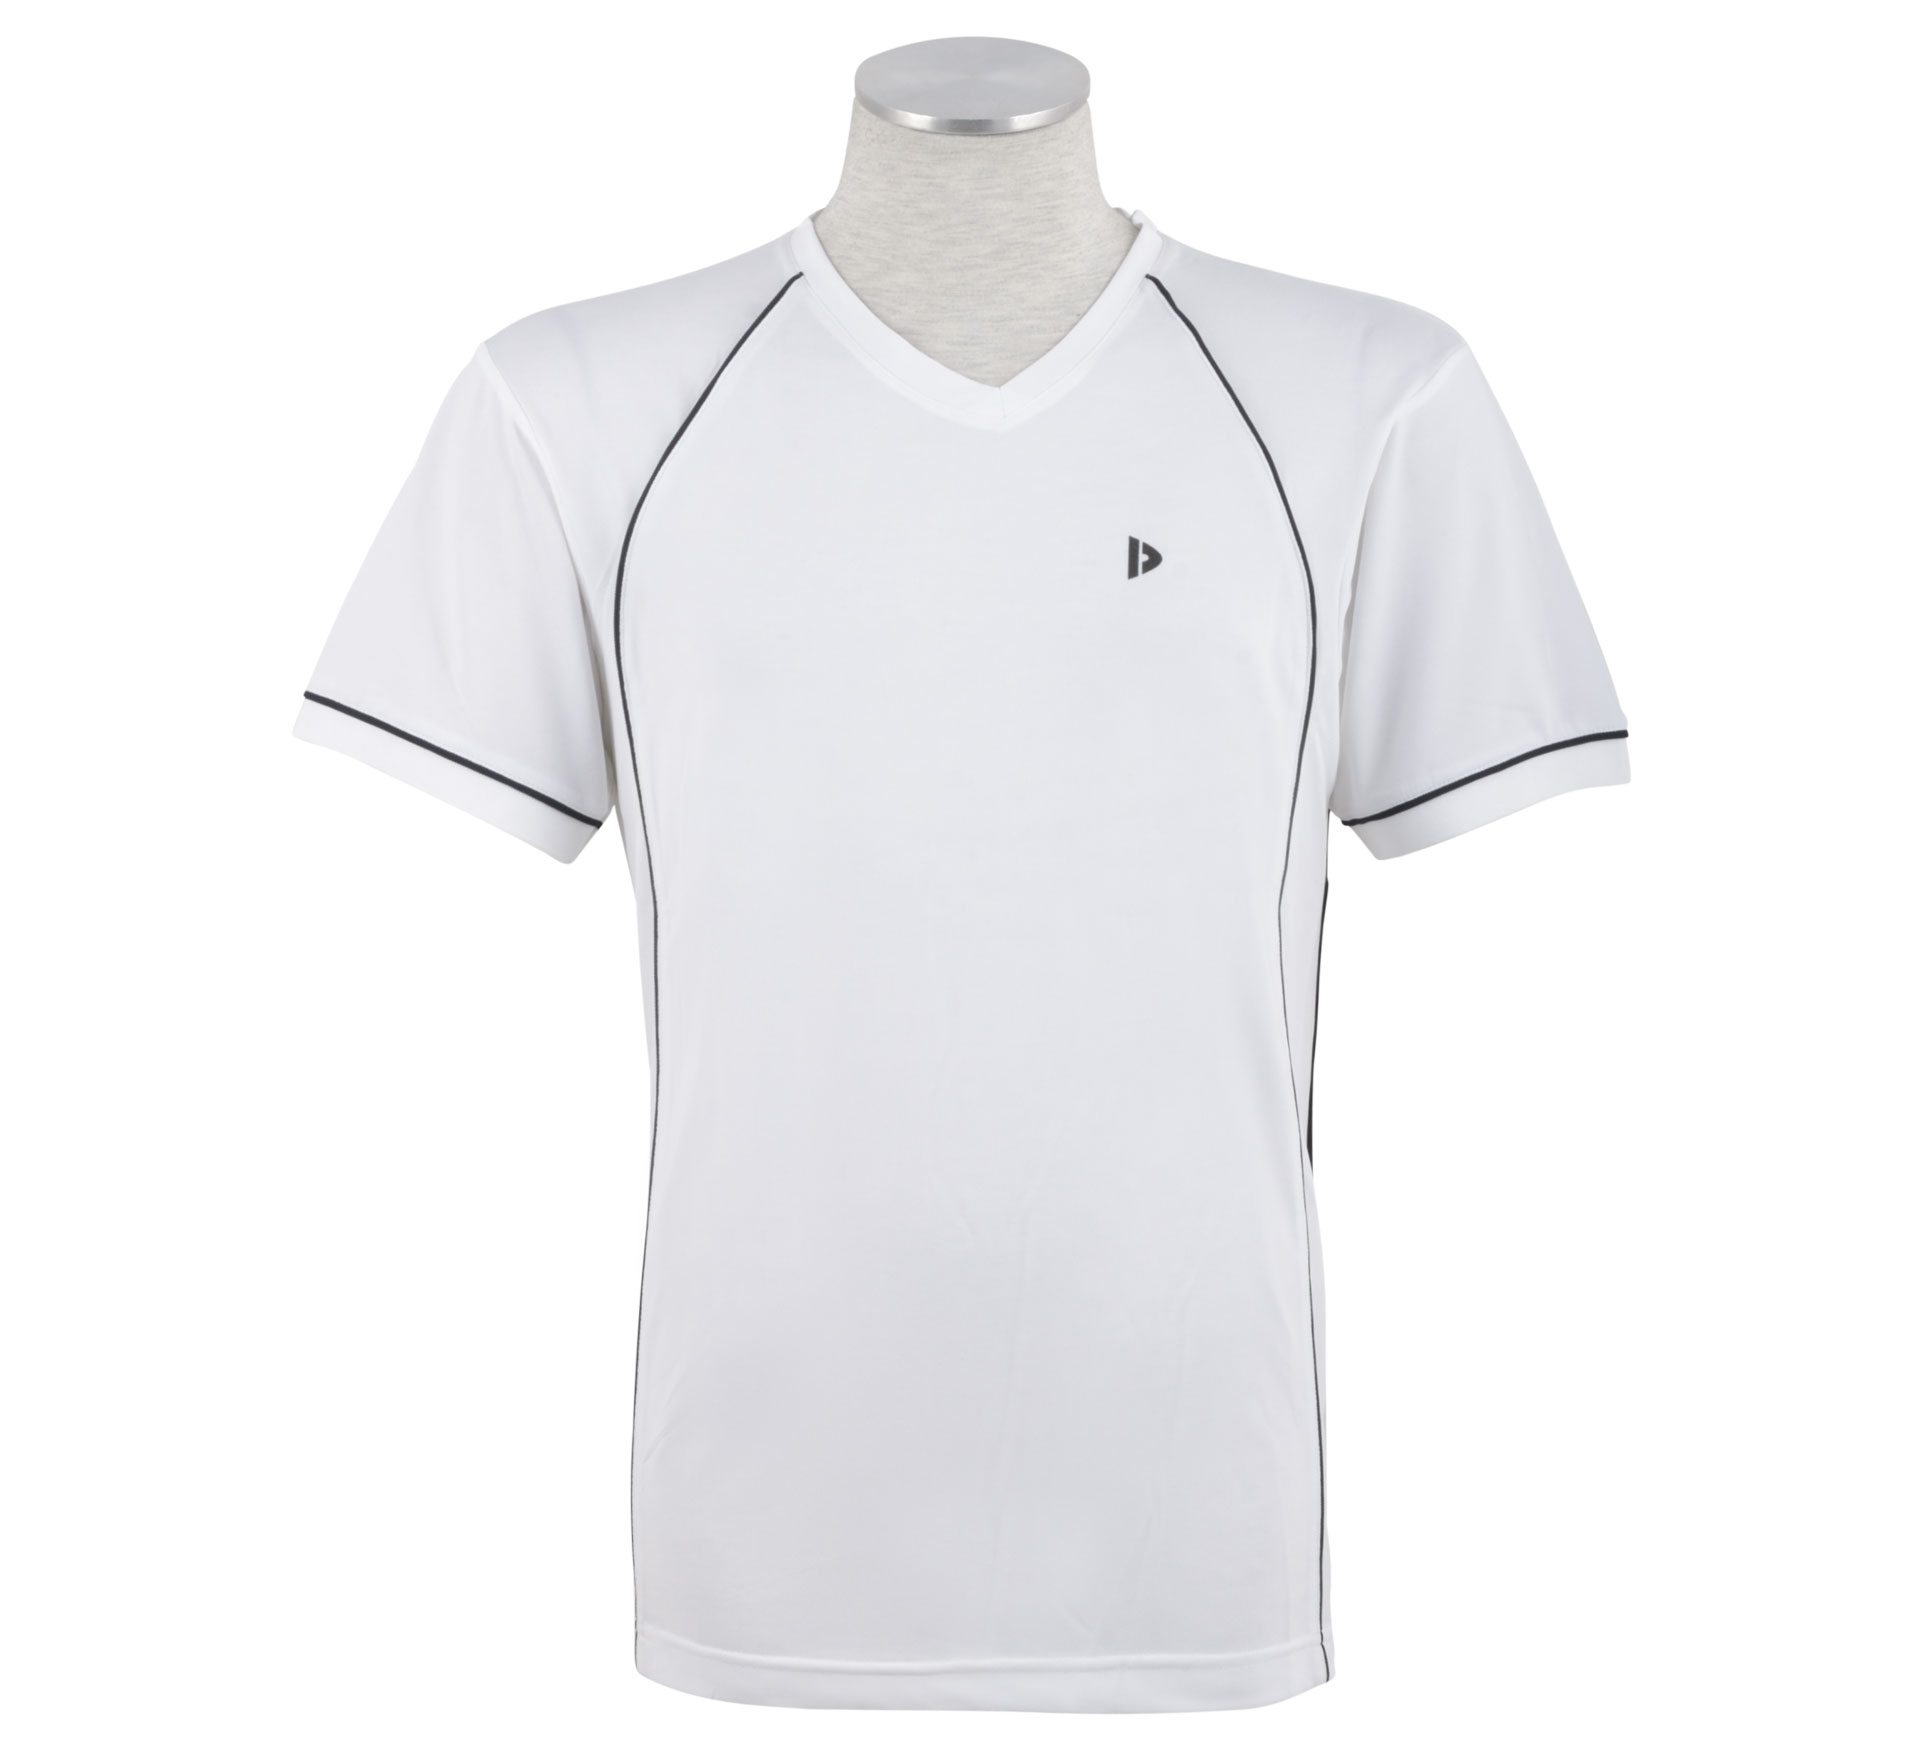 Donnay  Sportshirt Tony Heren wit - zwart